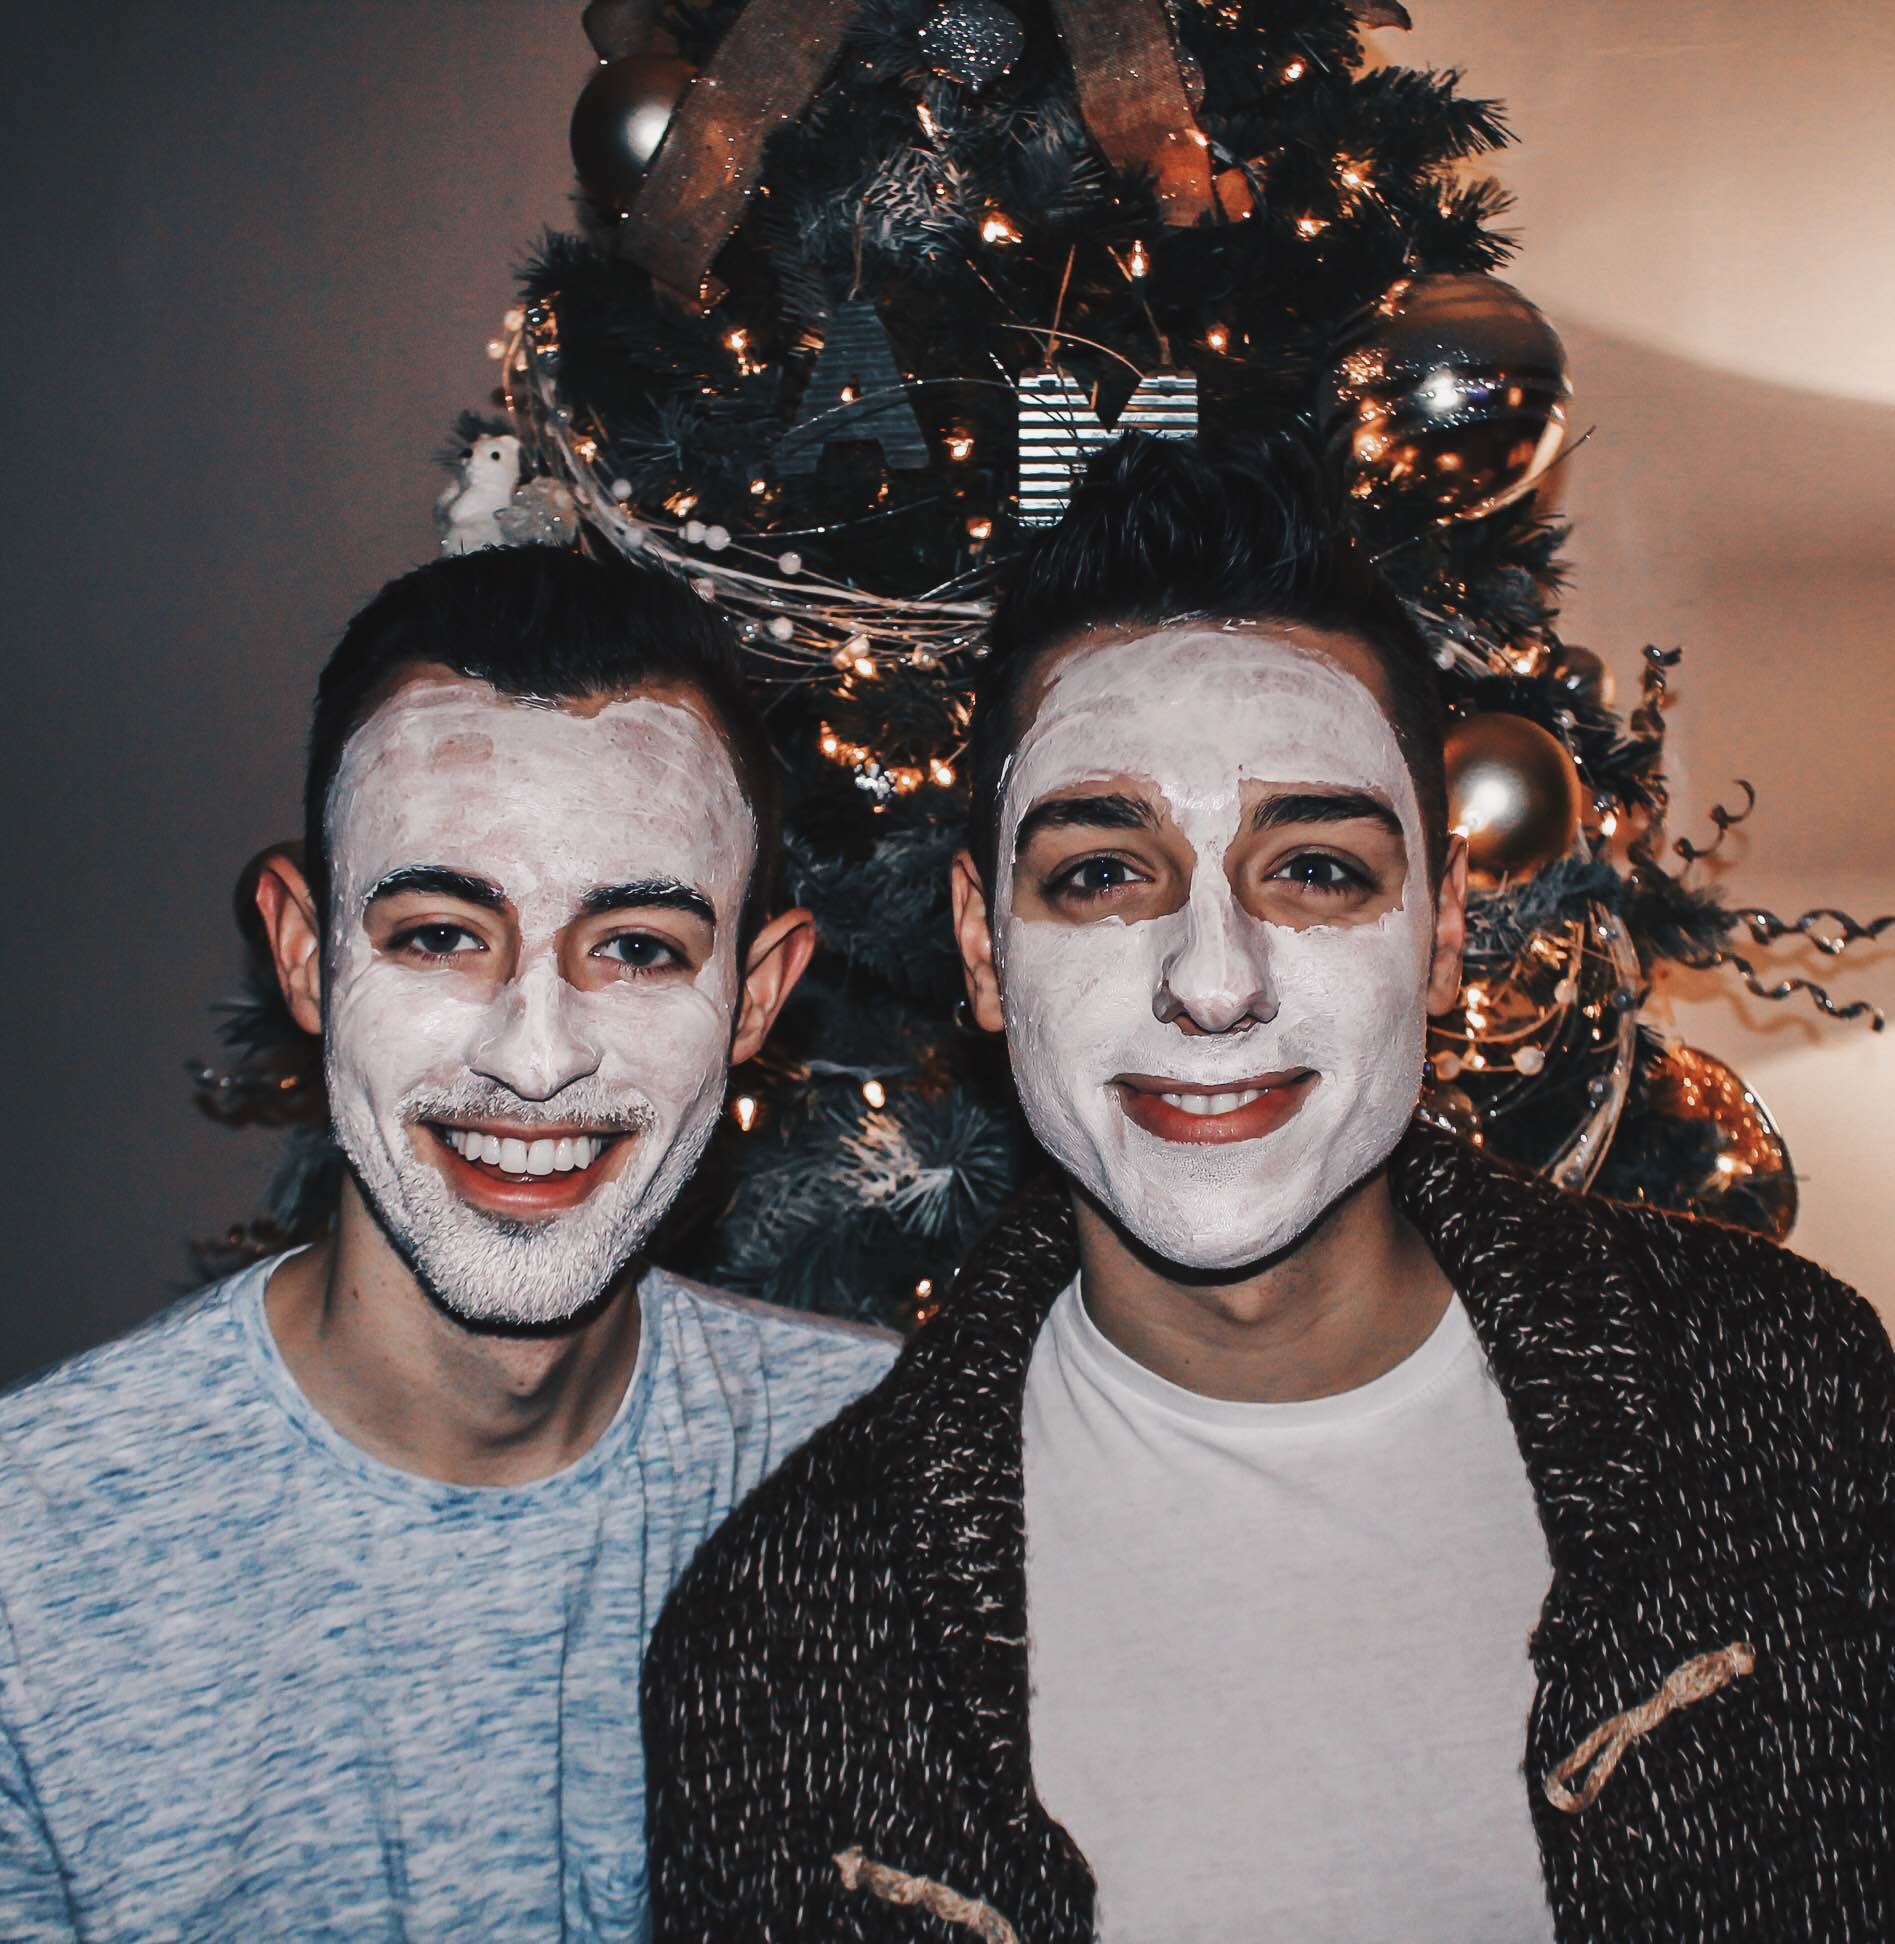 alex and mike with mask on